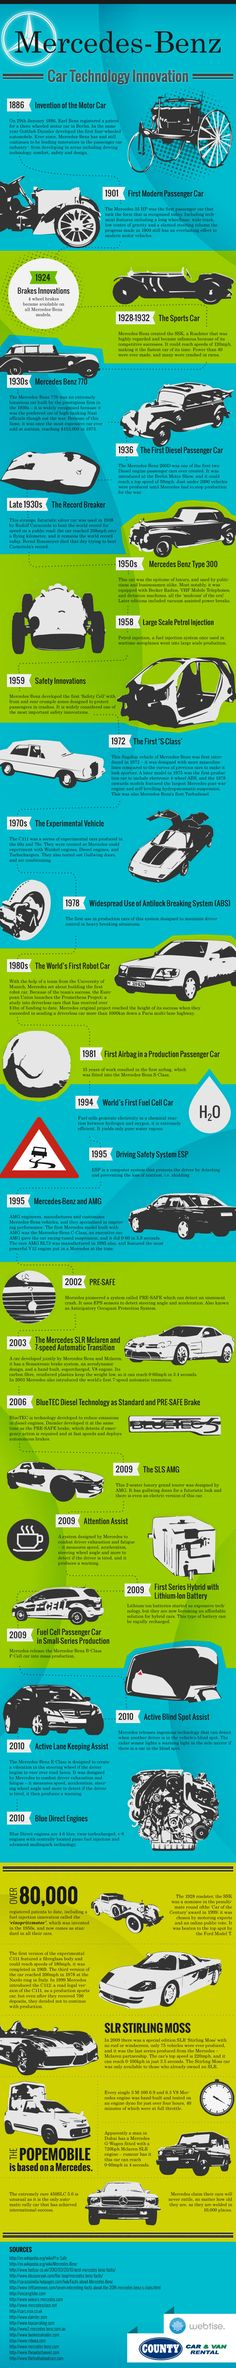 A timeline of the Mercedes Benz technology progression since 1886, detailing any technical and aesthetic changes in particular.